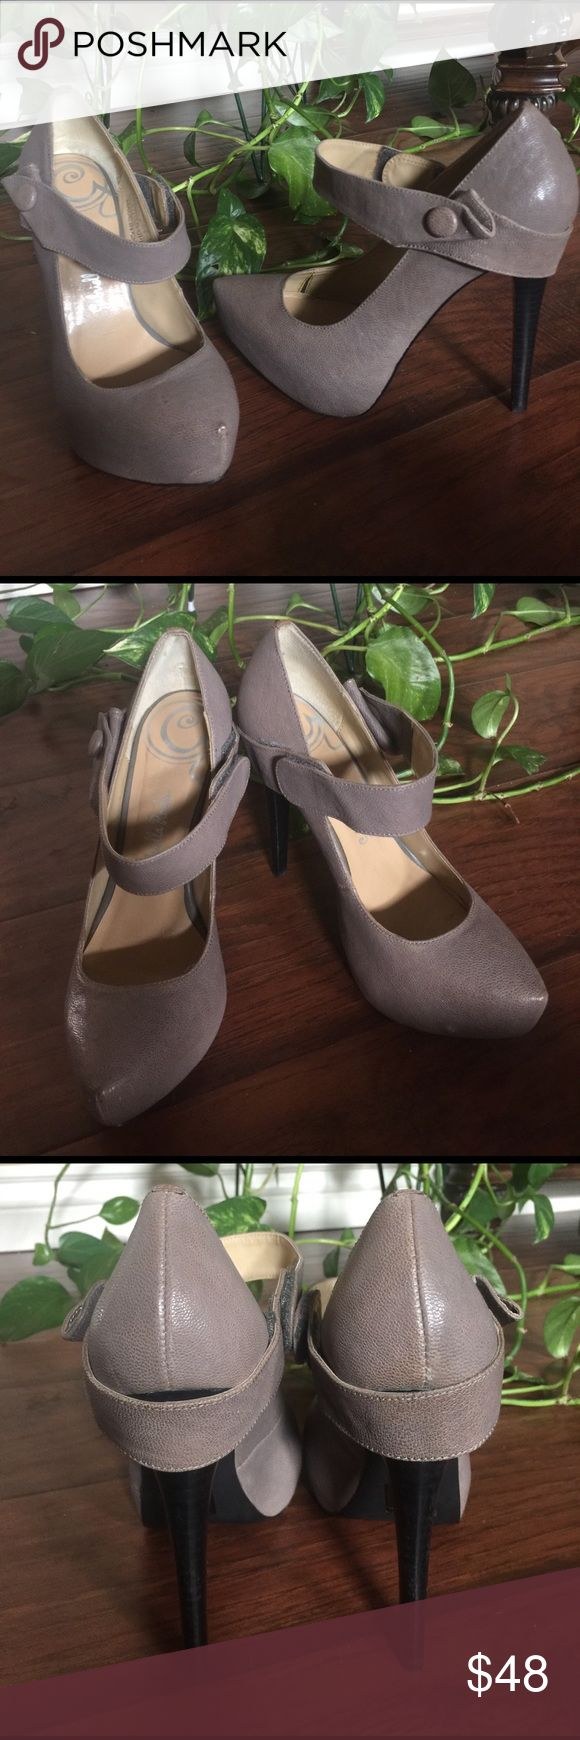 "Gabriela Rocha leather heels Taupe leather heels with velcro fastener. Great comfortable heels, perfect color to go with every outfit! From the office to drinks...Day to Night effortlessly 😍.... approximately 5"" heel with 1"" hidden platform. ... ✨EXCELLENT CONDITION ✨ MAKE AN OFFER ✨✨ Gabriella Rocha Shoes Heels"